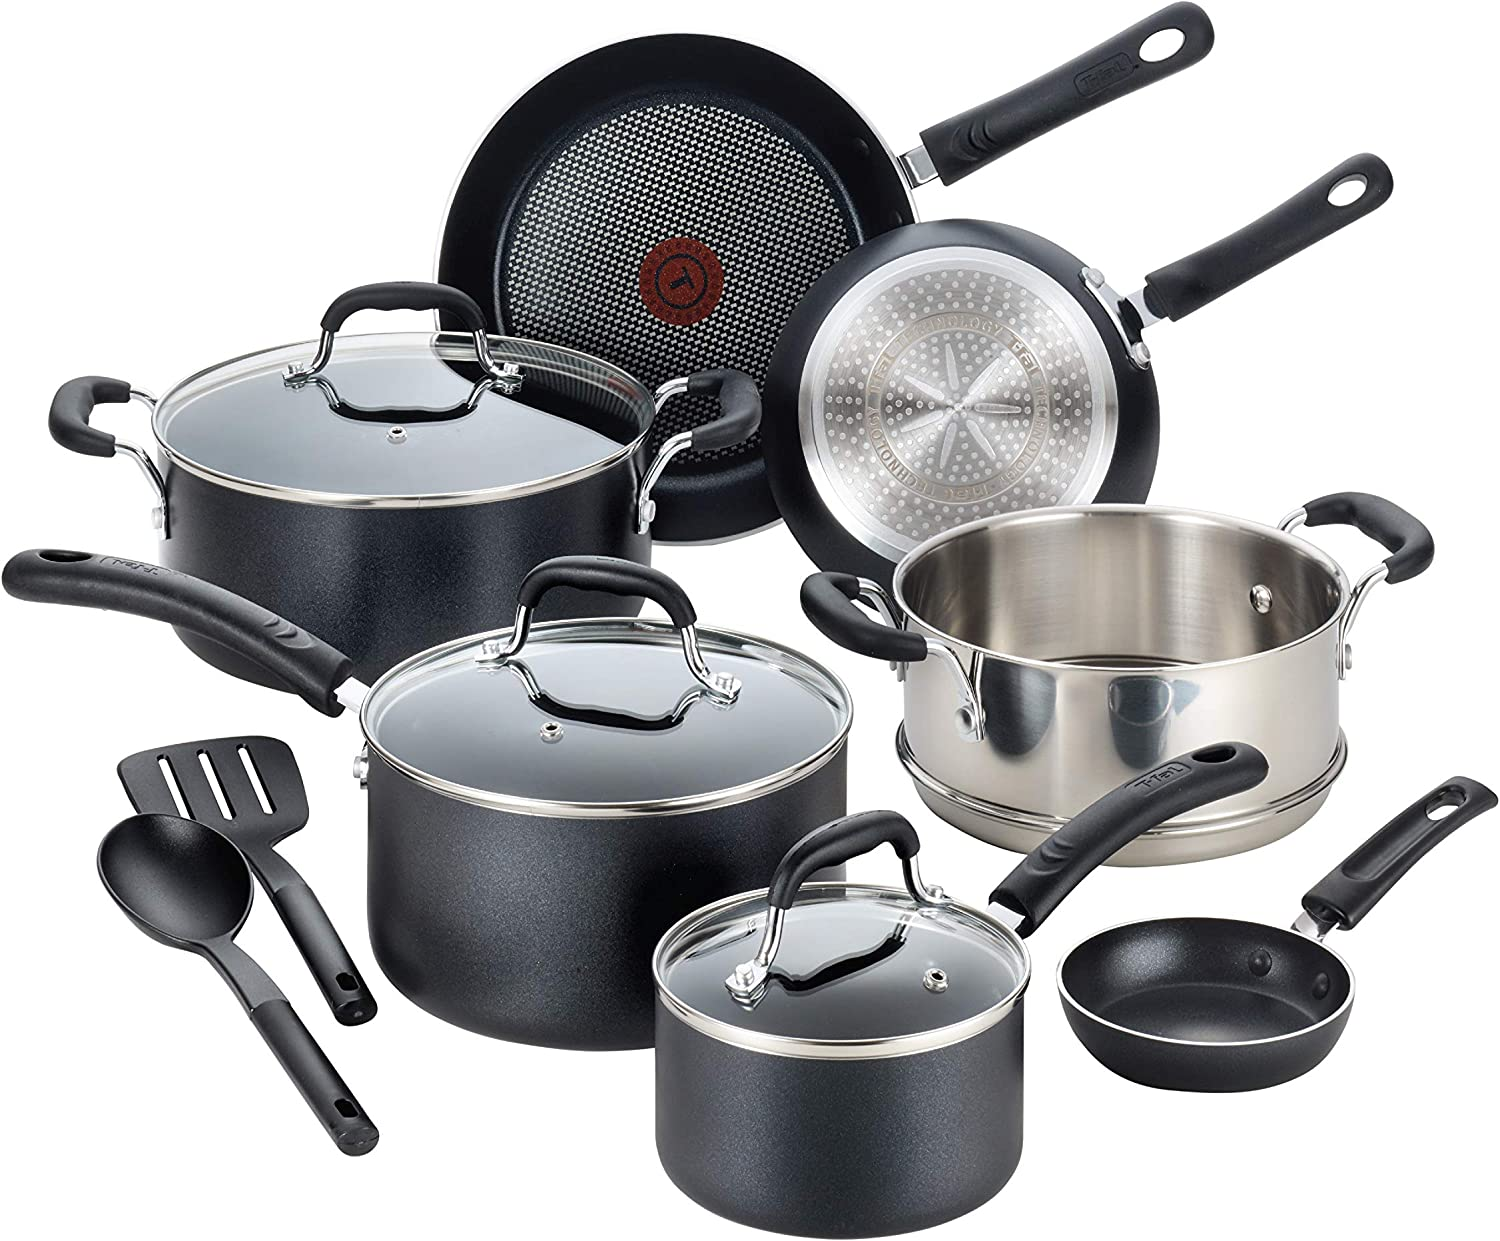 T-fal C515SC Professional Nonstick Cookware Dishwasher Safe Pots and Pans Set